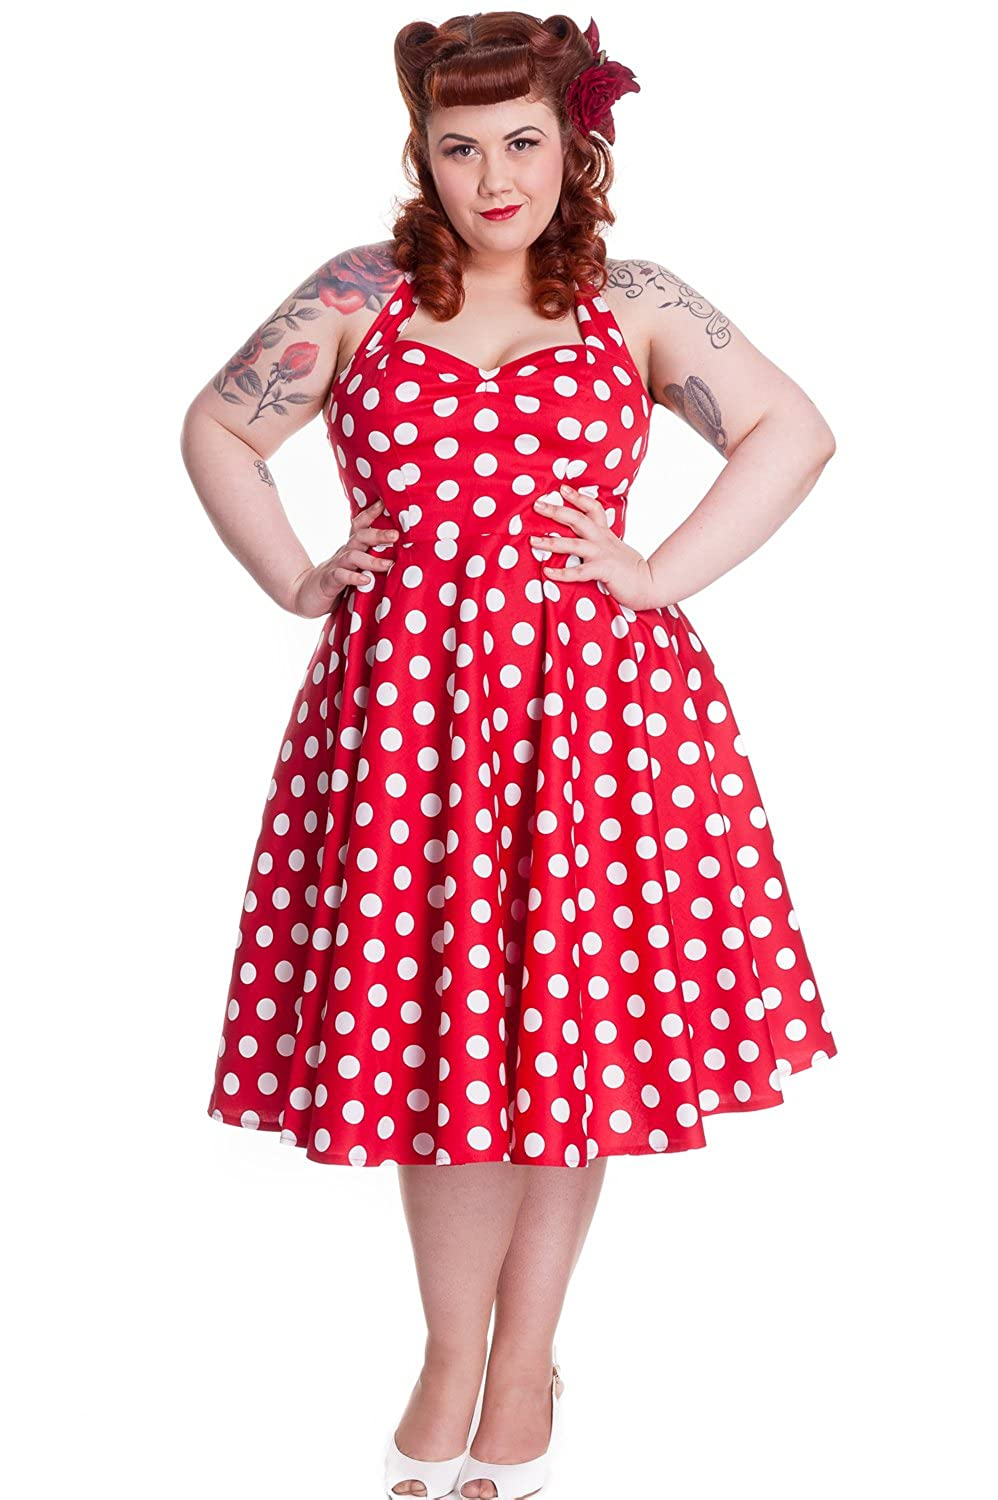 Vintage Polka Dot Dresses – 50s Spotty and Ditsy Prints Hell Bunny Plus Size Rockabilly Red and White Polka Dot Minnie Halter Dress $89.95 AT vintagedancer.com